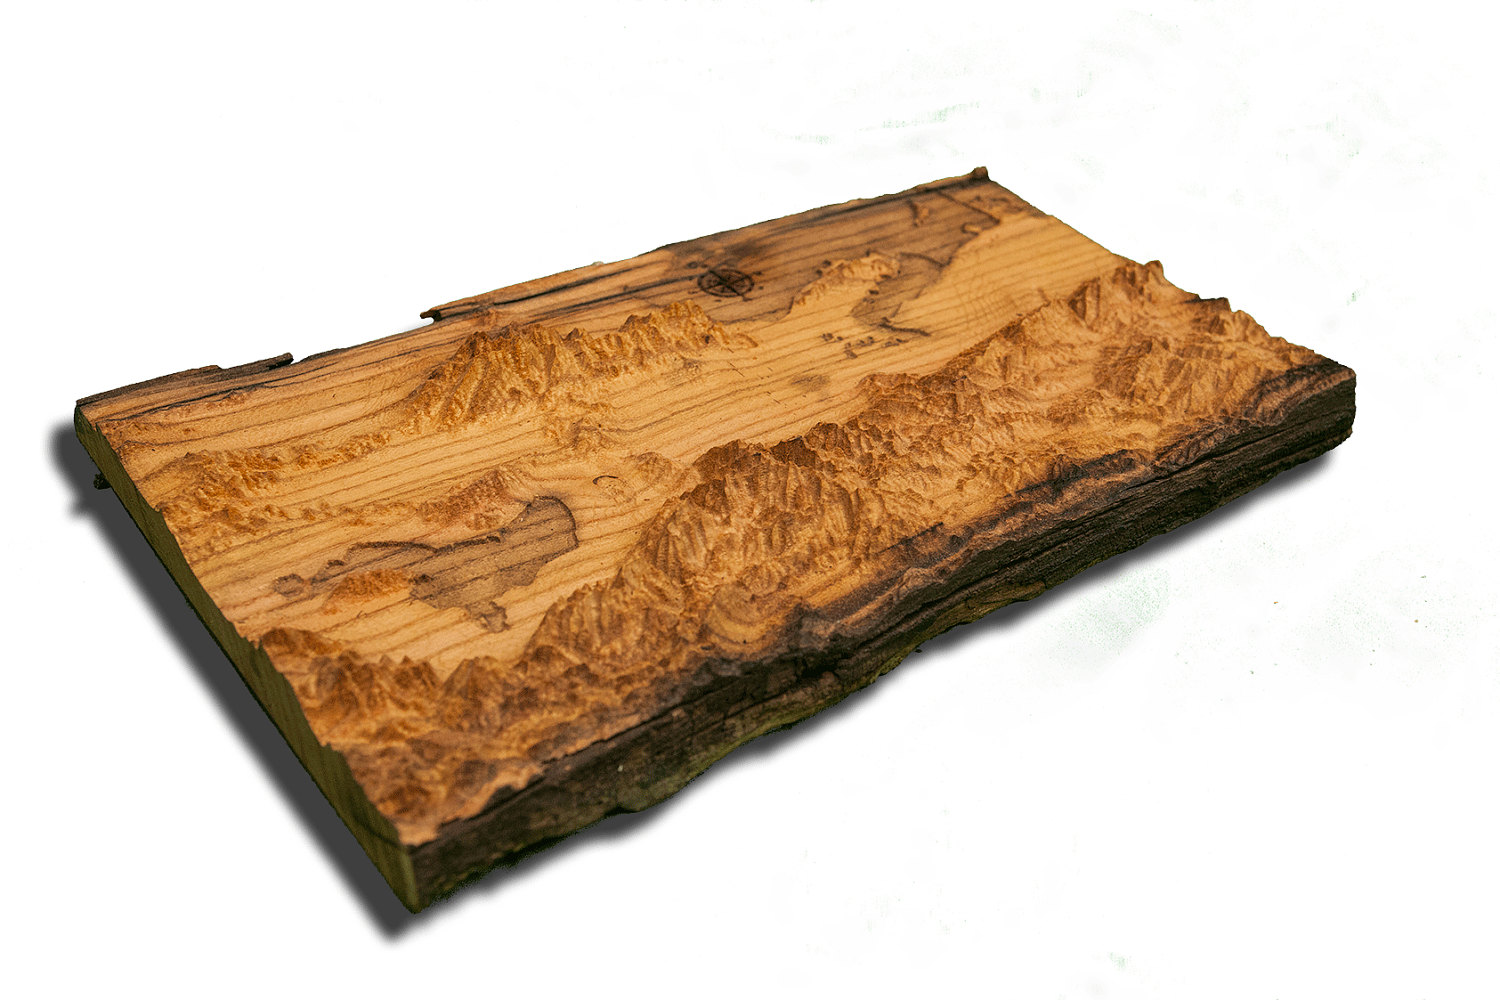 map of utah ski areas with Salt Lake City Utah Area Topographical Map From A Natural Live Edge Wood Slab California Vintage Rustic Fine Art One Of A Kind Piece on Brighton Utah additionally Trail Maps besides 112 also 2008 11 01 archive together with Trail Map.